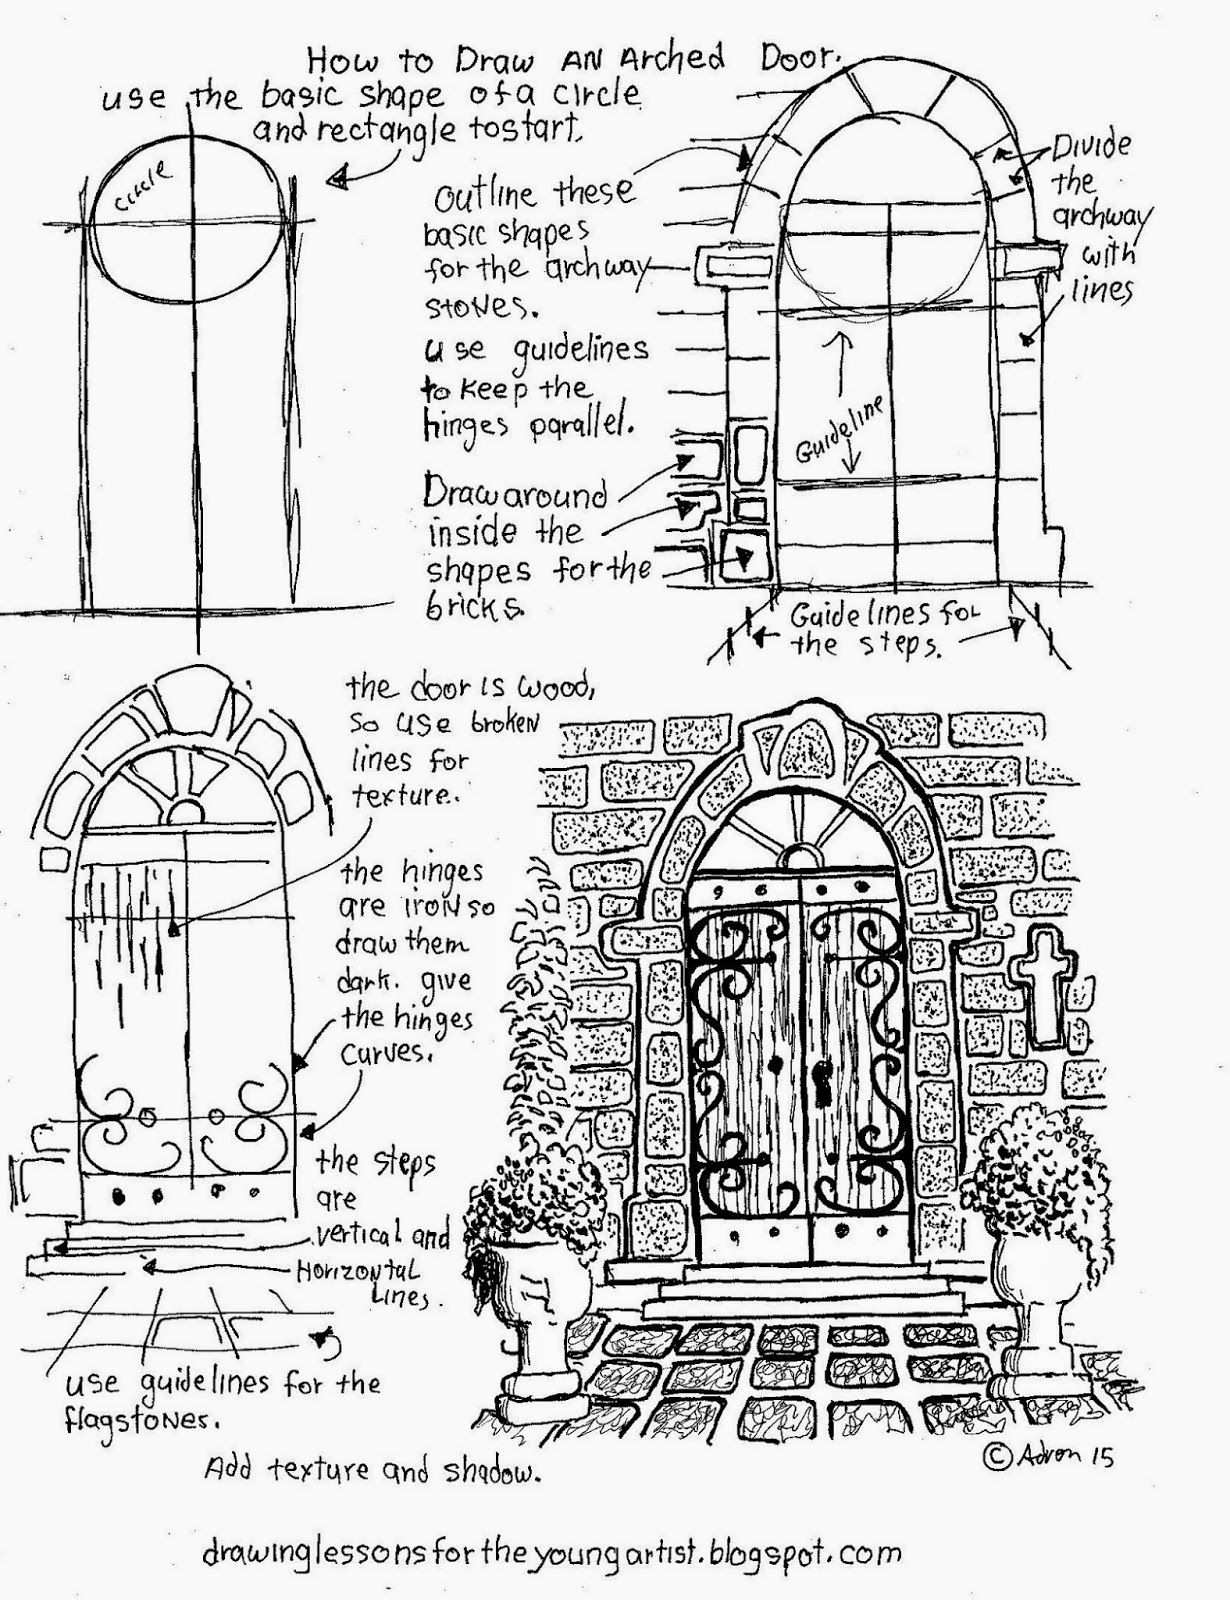 How To Draw An Arched Door A Free Printable Worksheet